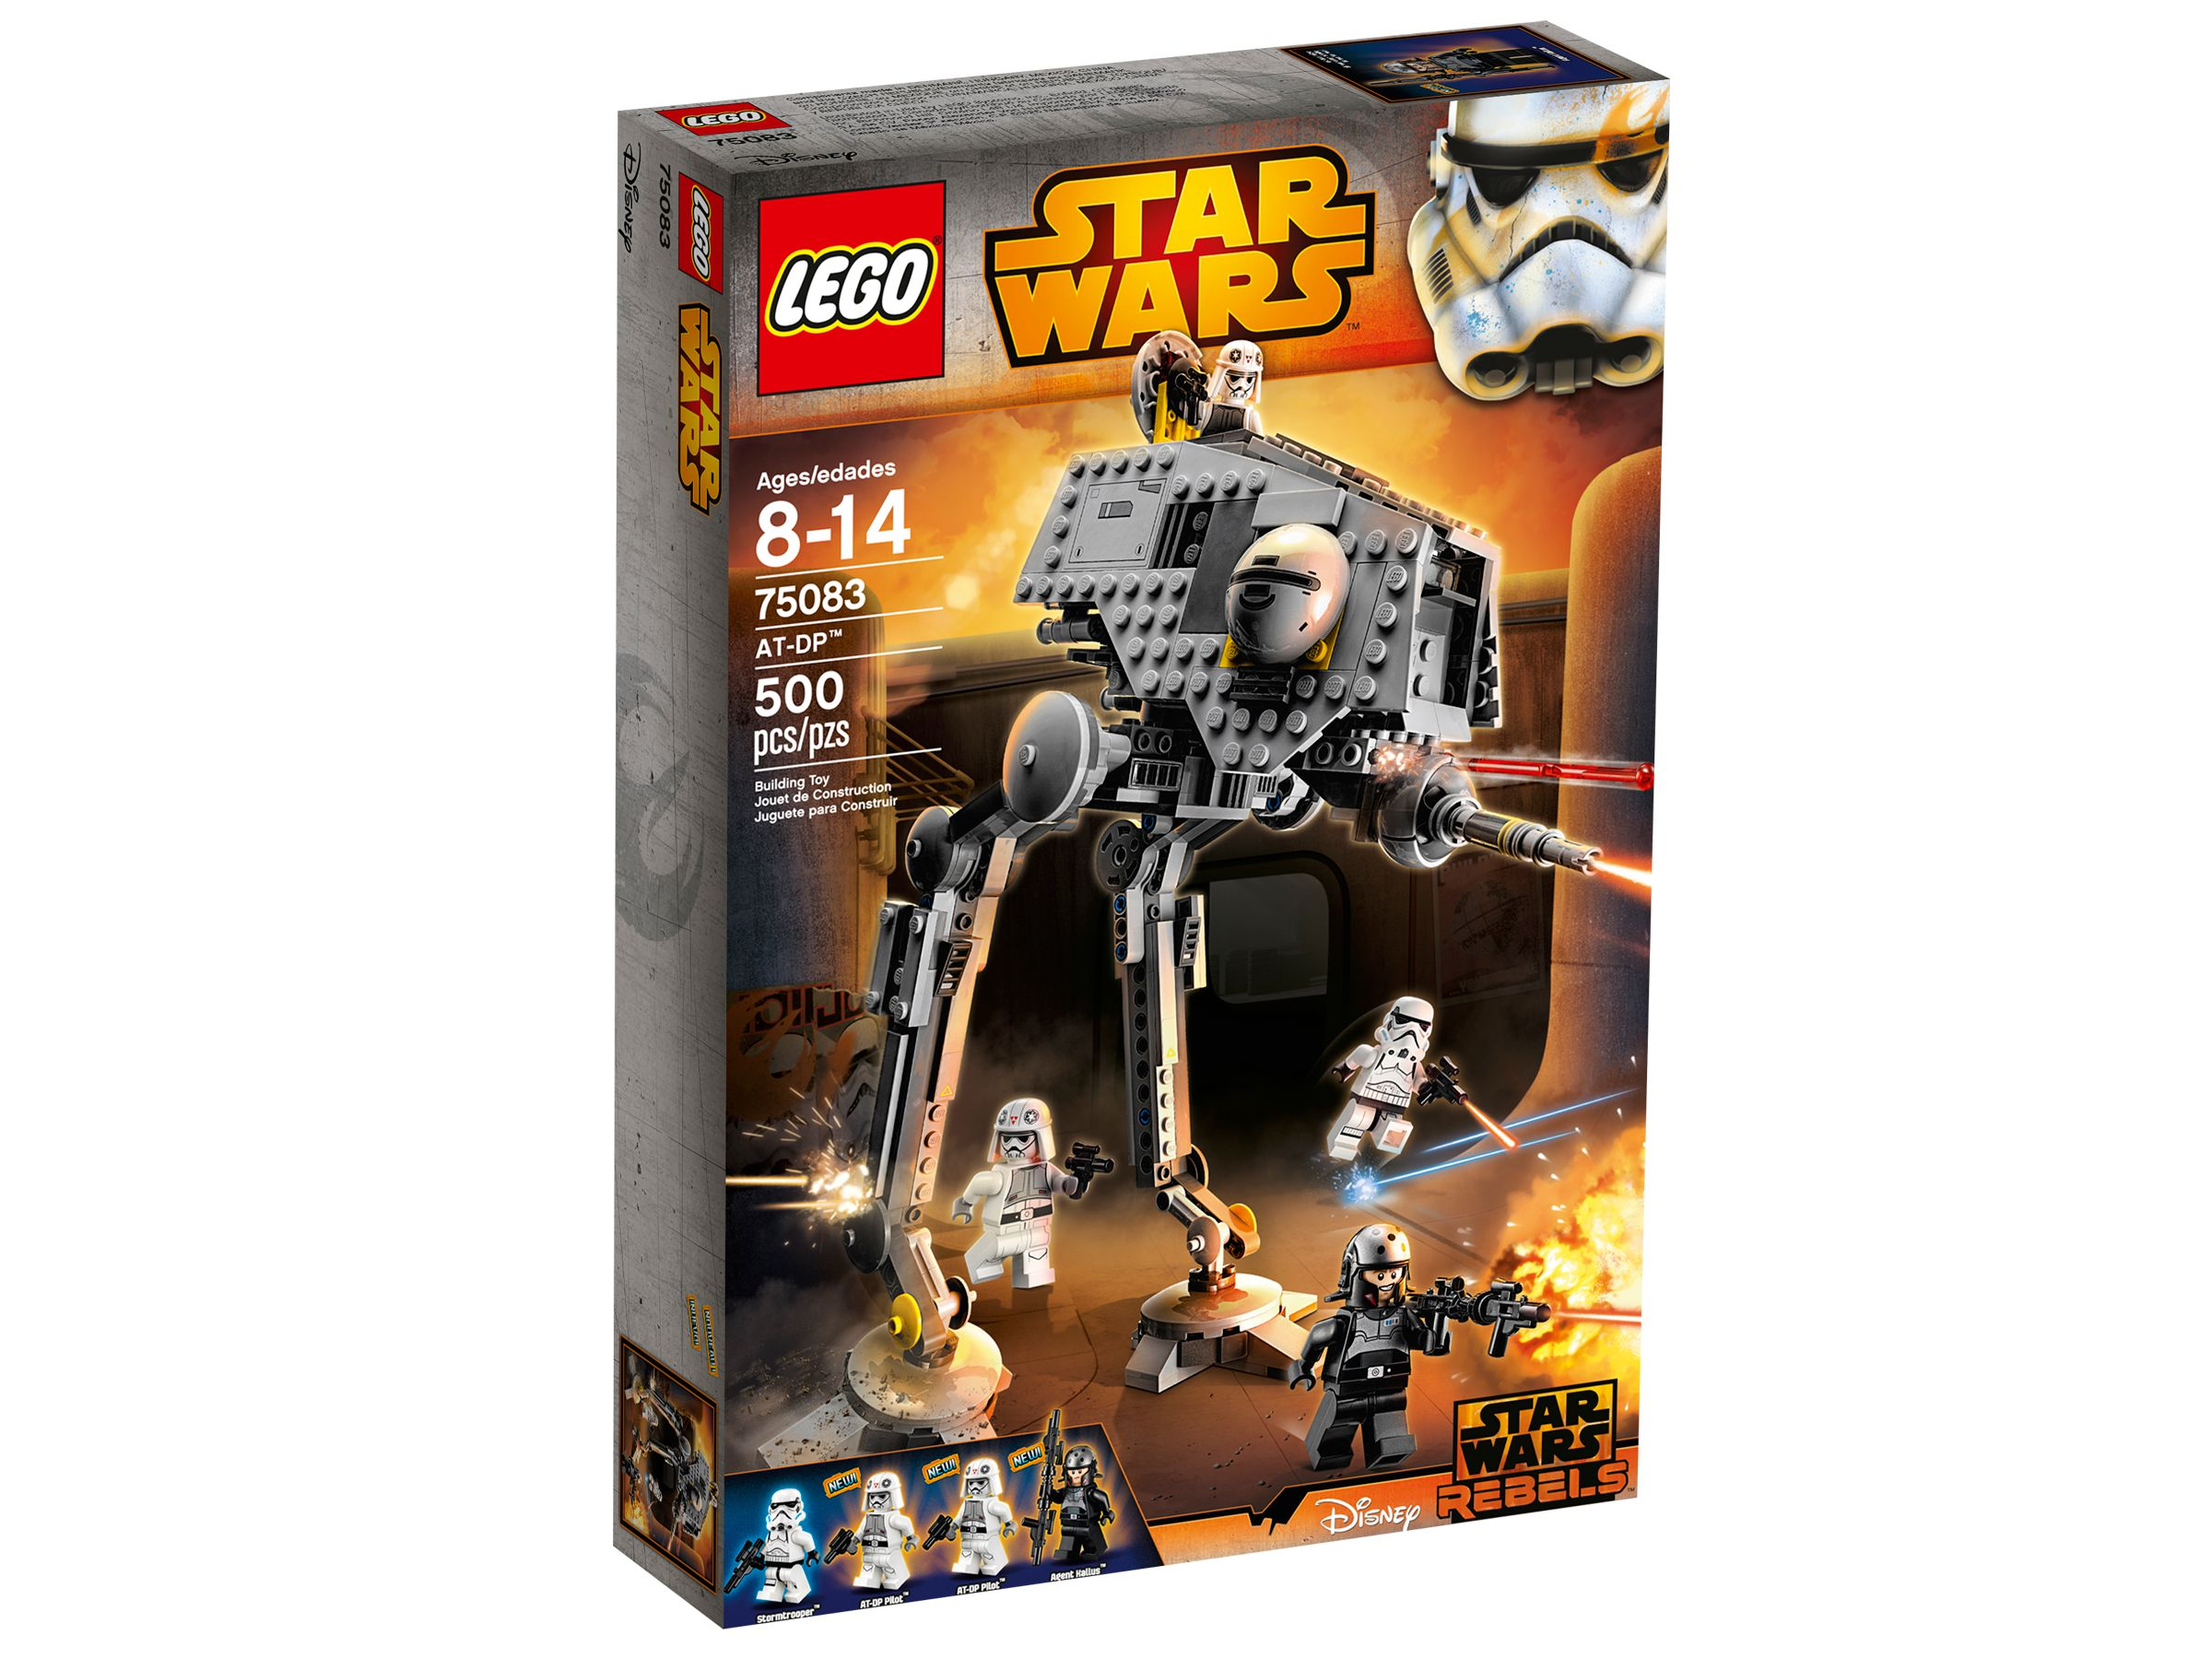 LEGO Star Wars 75083 AT-DP™ LEGO_75083_alt1.jpg